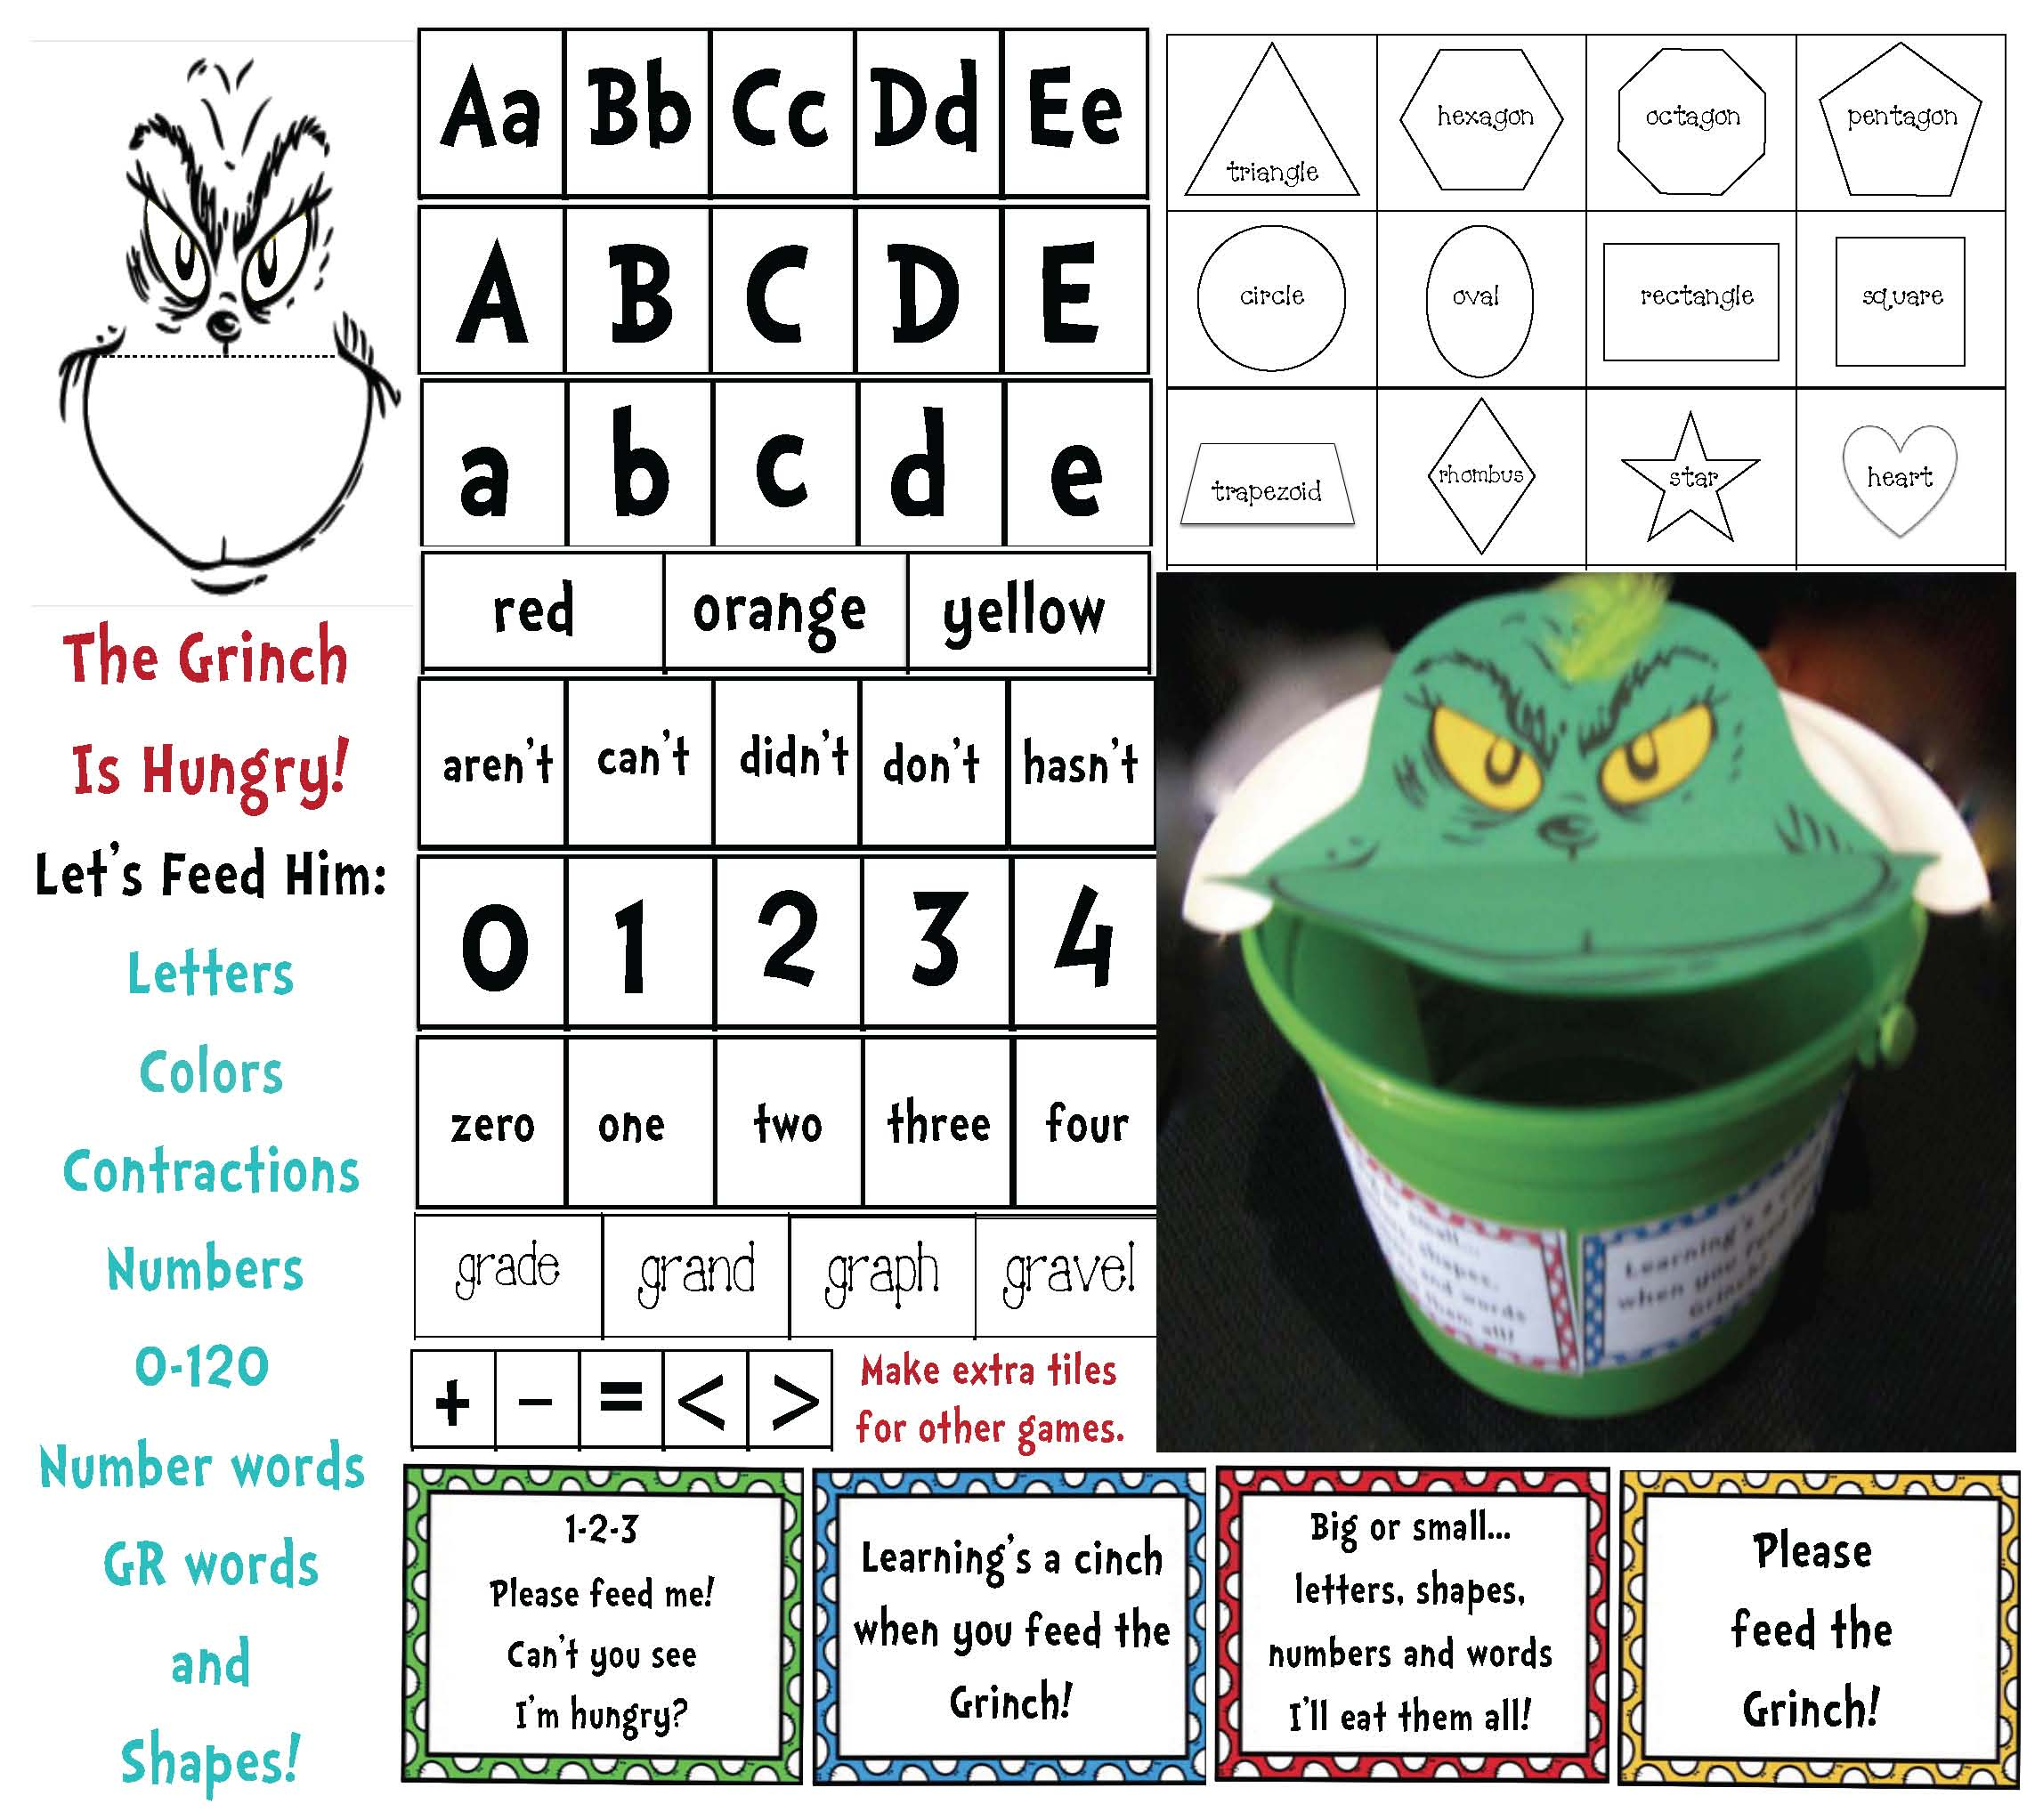 Grinch activities, grinch crafts, rhyming activities, Seuss crafts, common core Seuss, Seuss writing prompts, grinch games, how the grinch stole christmas, GR word blends, word blend activities, contractions, contraction cards, list of contractions, contraction games, Daily 5 word work for March, Daily 5 word work for Seuss, Seuss common core, common core seuss, alphabet games, alphabet cards, alphabet activities, number cards 0-120, shape activities, shape cards, 2d shapes, 3D shapes, shape cards, shape games, number words, color words,